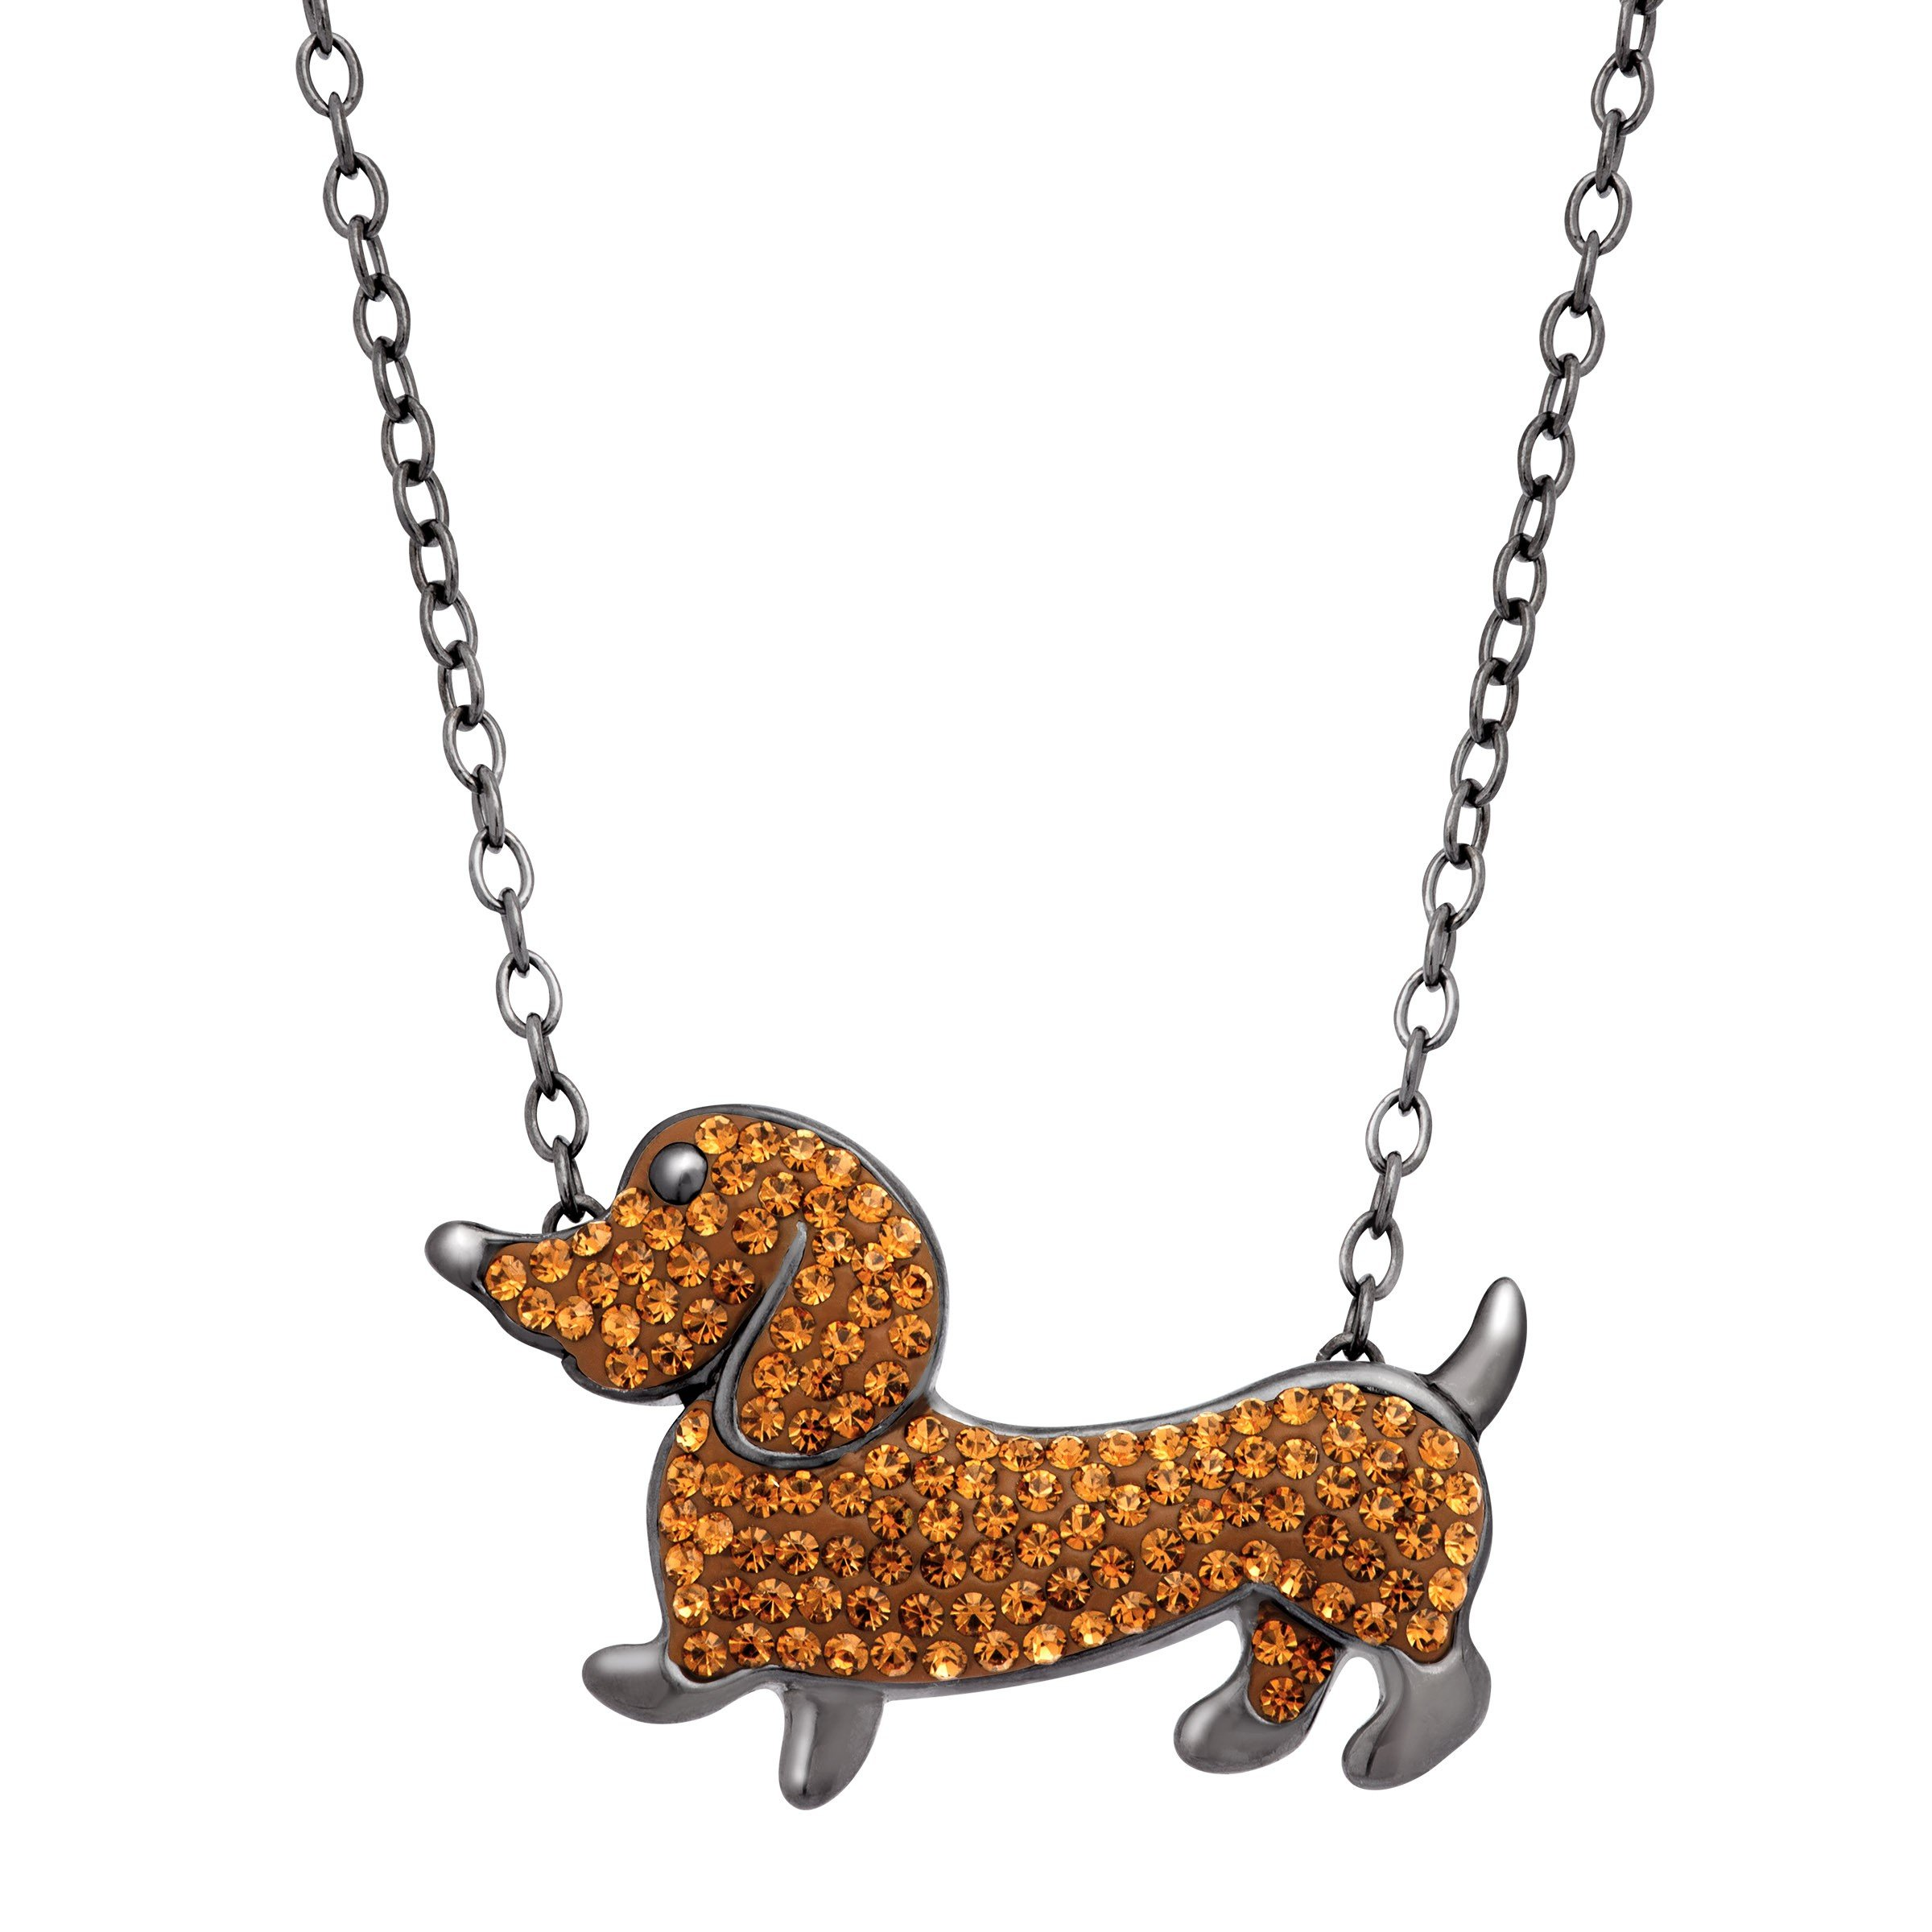 Crystaluxe Dachshund Necklace with Swarovski Crystals in Sterling Silver